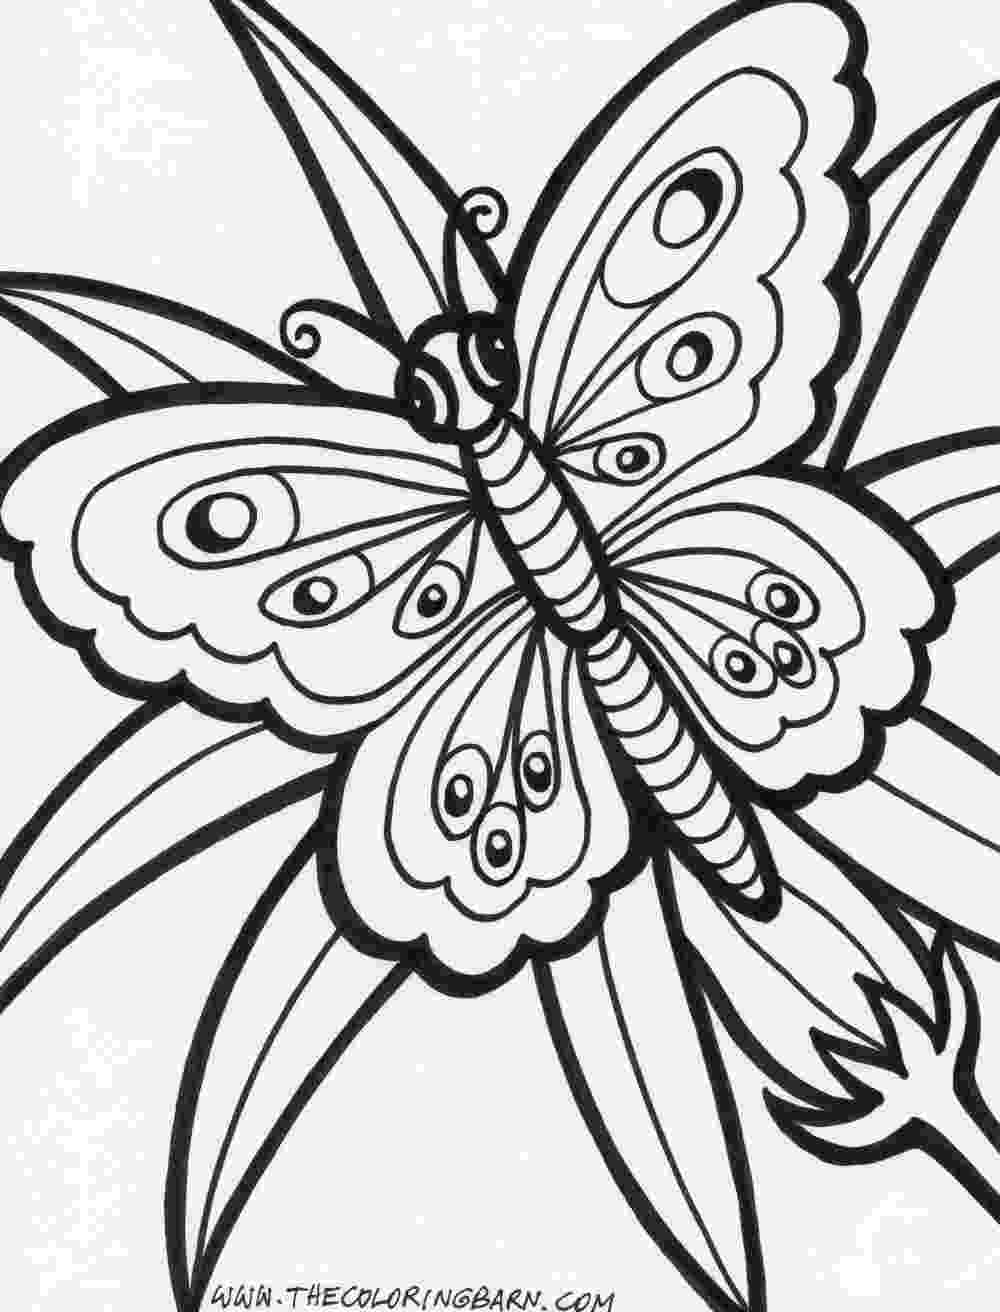 flowers coloring pages printable free printable flower coloring pages for kids cool2bkids printable flowers coloring pages 1 1